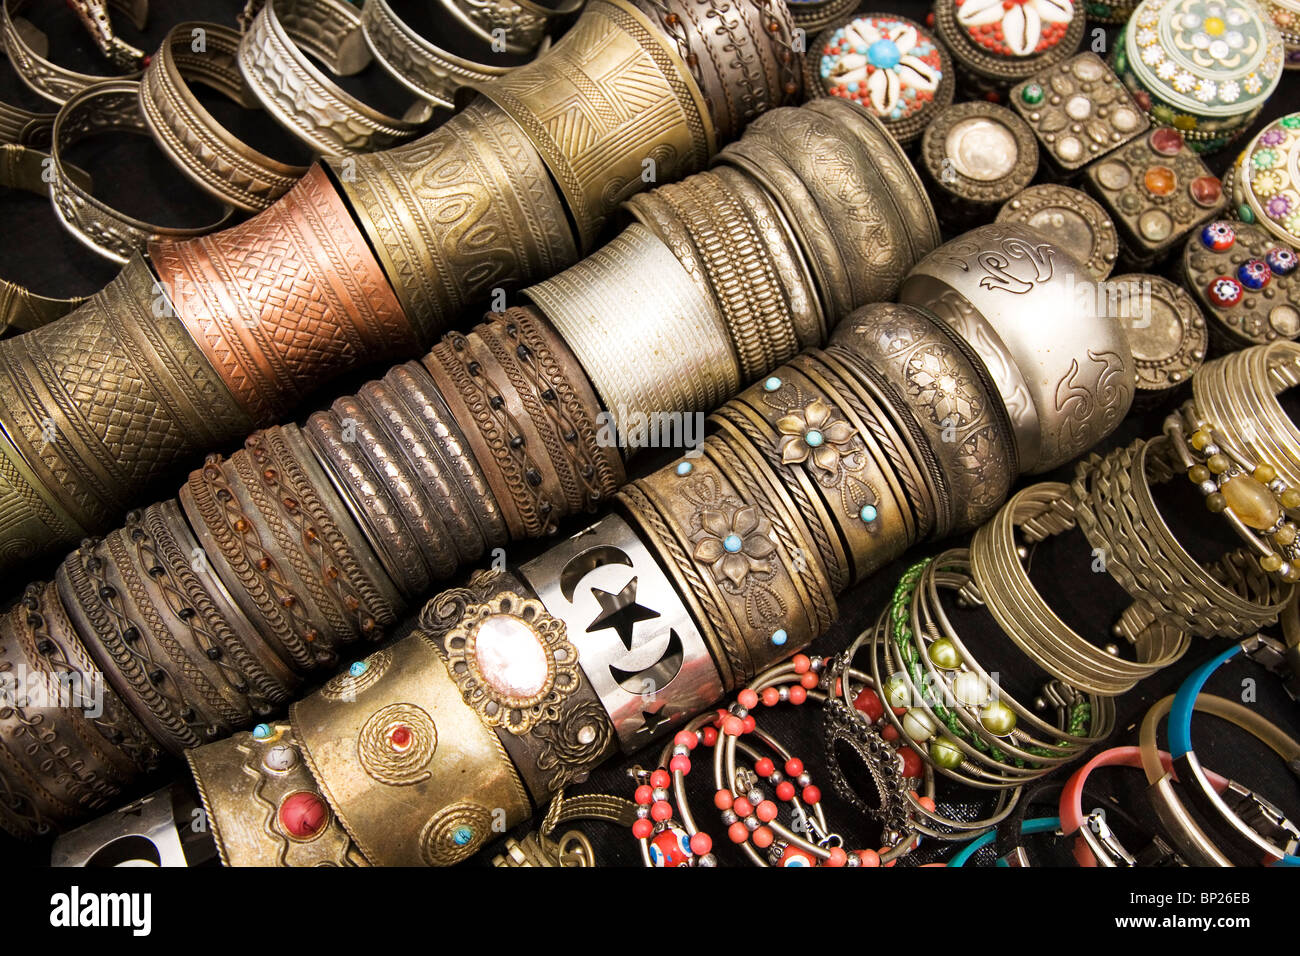 Bracelets are sold as souvenirs a market stall at Houmt Souk in Djerba, Tunisia. - Stock Image